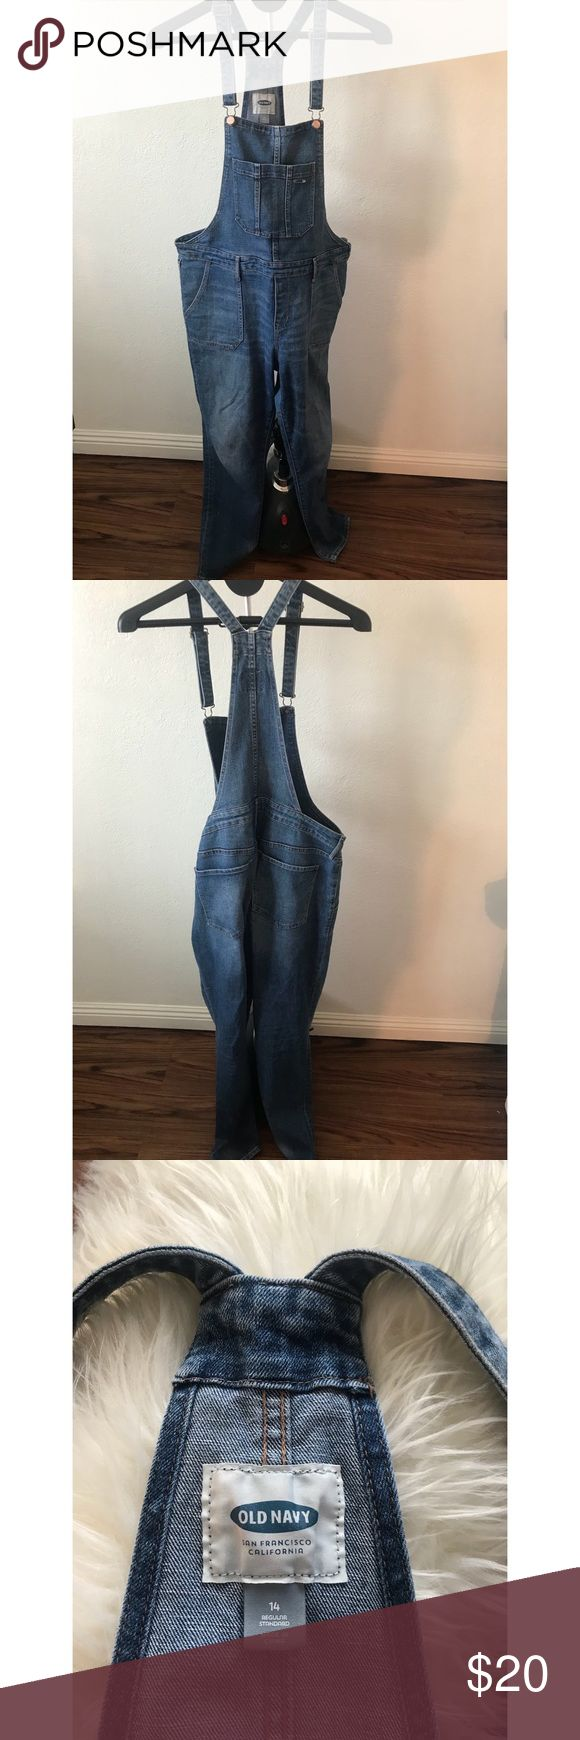 Old Navy Overalls Old Navy Women's bib denim overalls. Super cute for any time of the year! Some wear at the ends by ankle. Size 14. 🌵Smoke Free Home 🌵Pet Free Home 🌵Ships 1-2 Business Days 🌵Offers Encouraged Old Navy Jeans Overalls